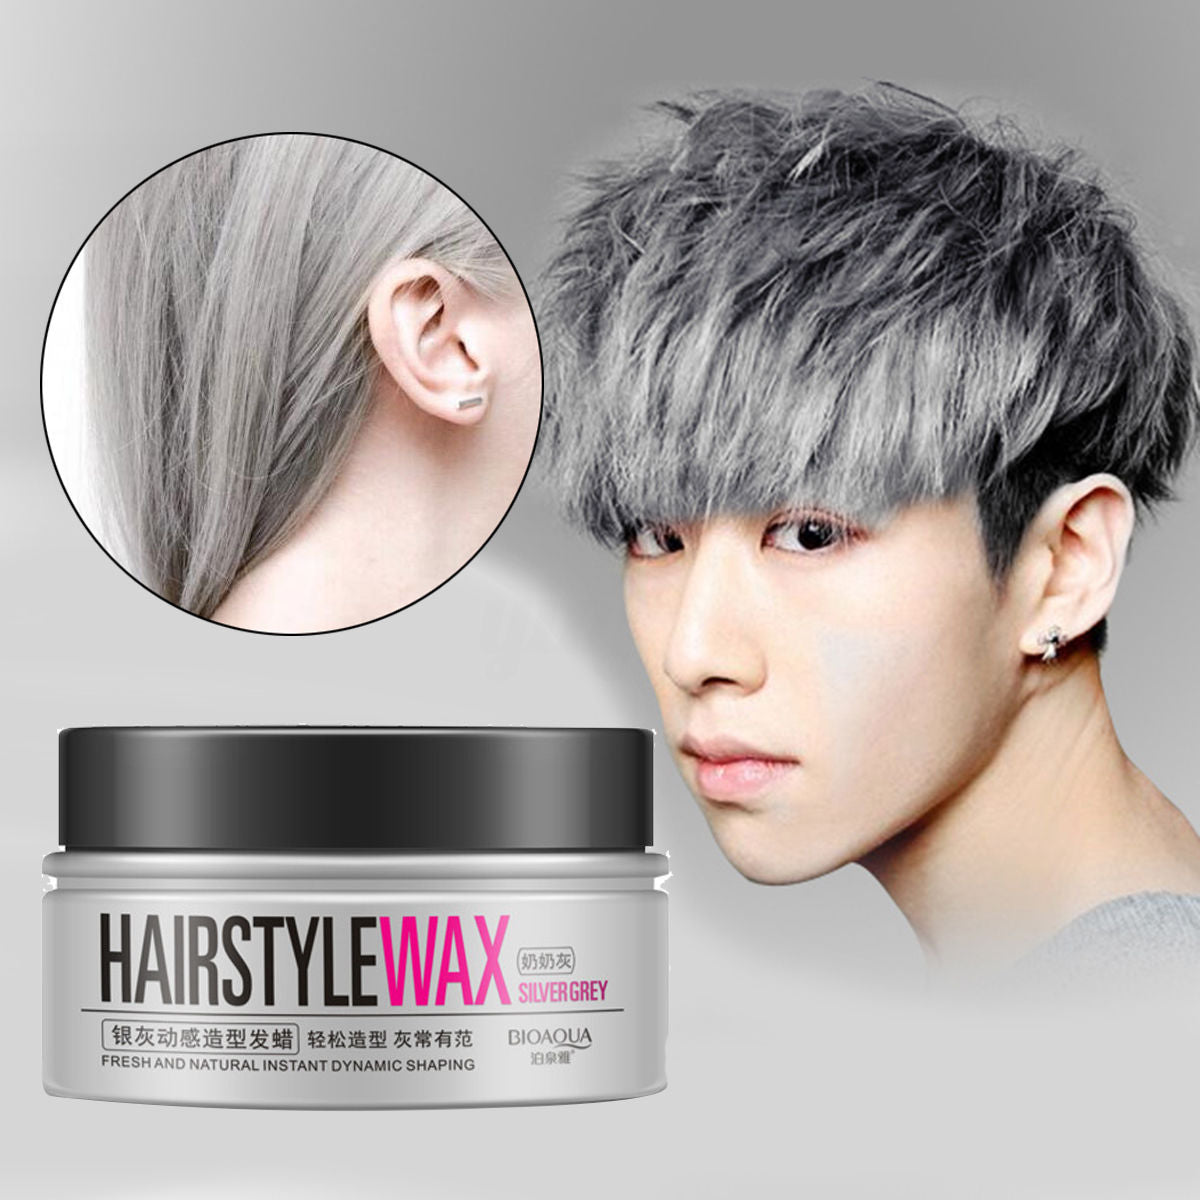 BIOAQUA Unisex Temporary Modeling Gray Silver DIY Hair Color Wax Hair Mud Water Gel Hair Modelling Styling Products